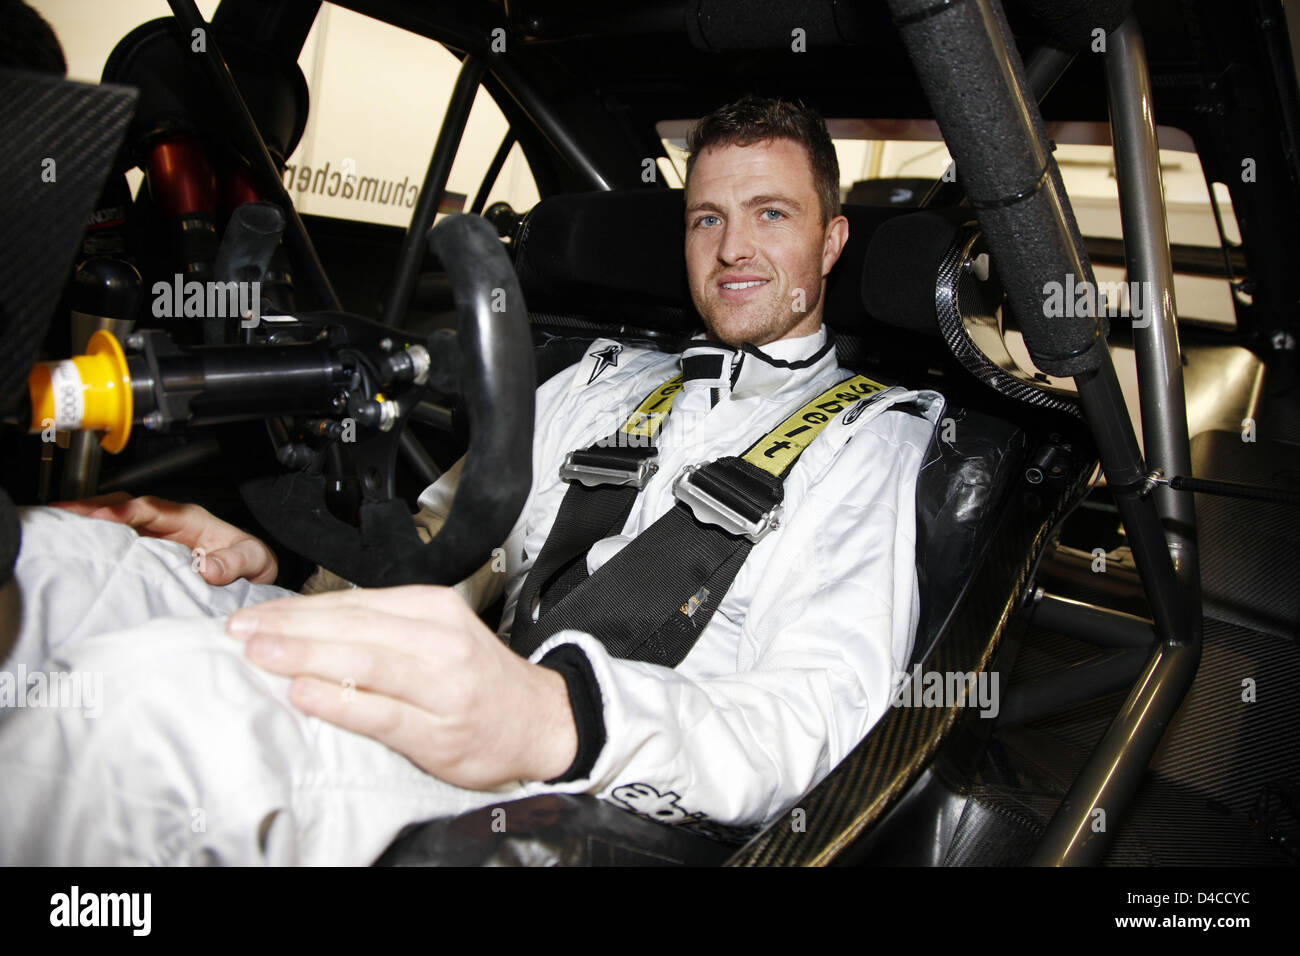 Ralf Schumacher sits behind the steering wheel of a 2008 DTM-Mercedes at the race track in Estoril, Portugal, 16 - Stock Image